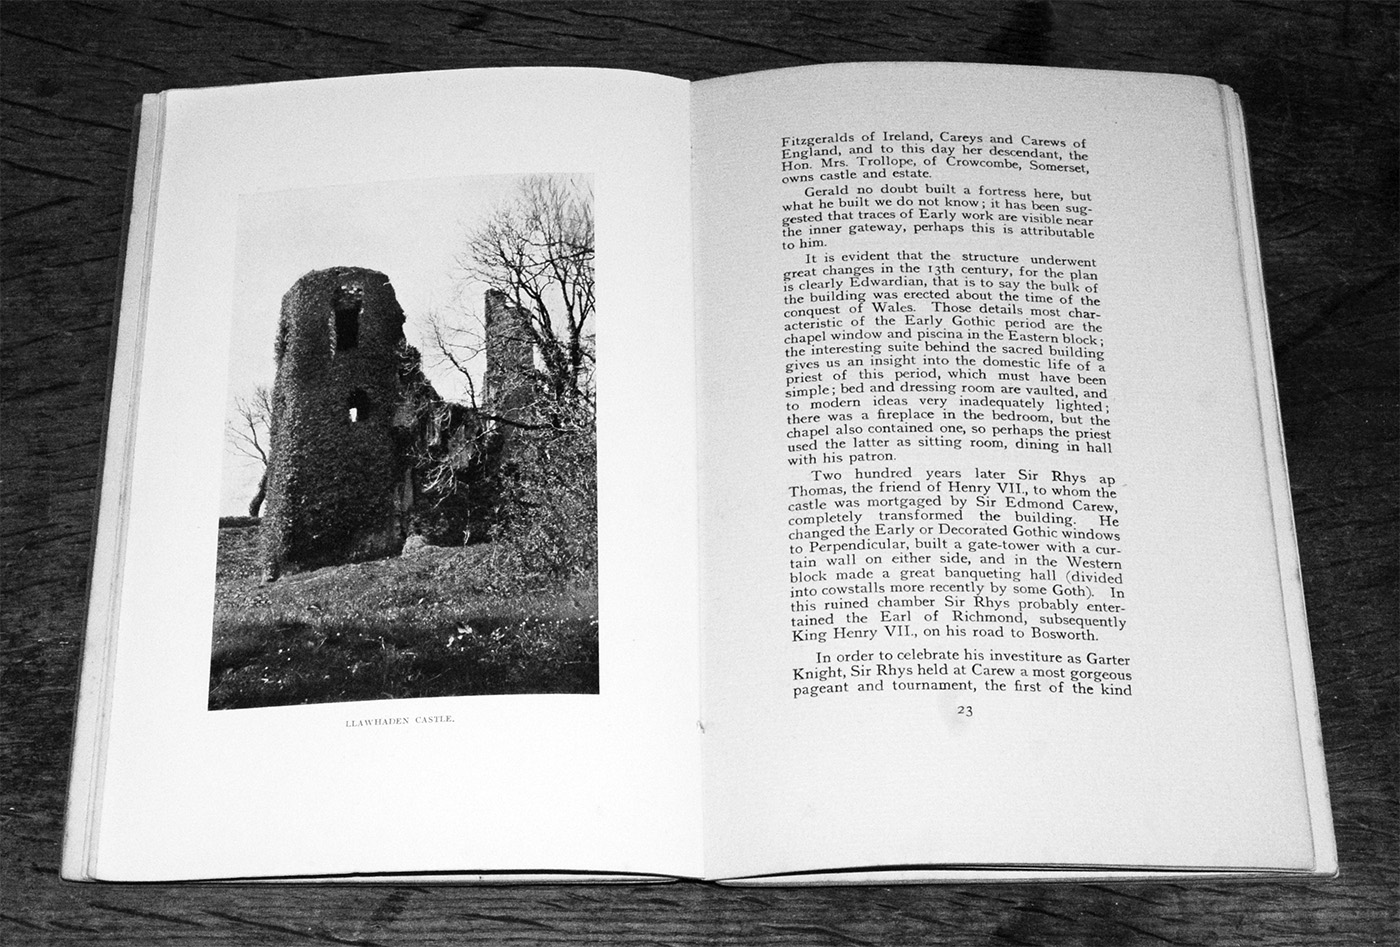 Castles and Strongholds of Pembrokeshire-book-Emily Hewlett Edwards-4